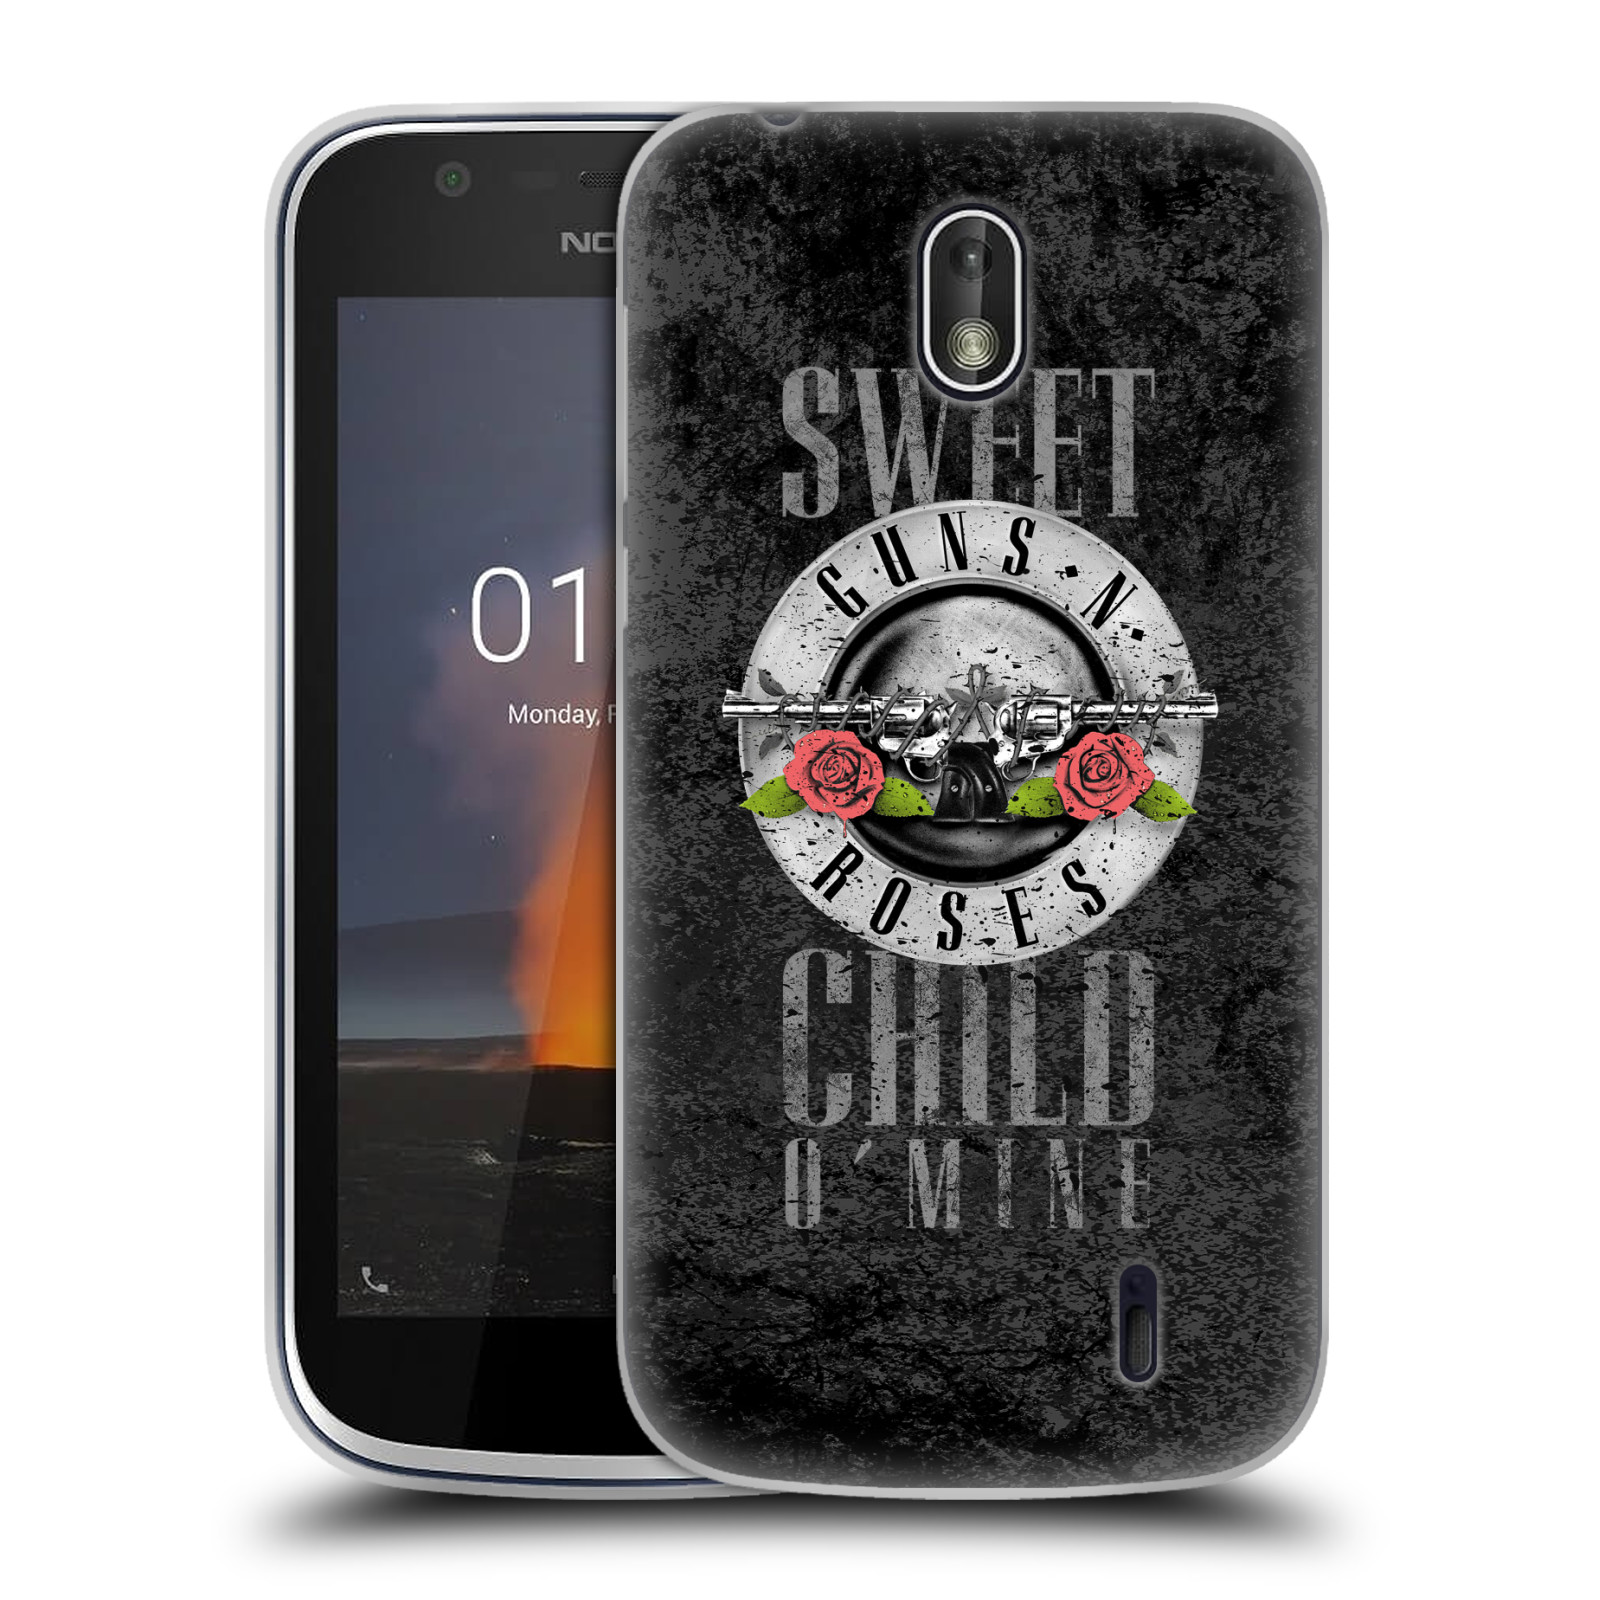 Silikonové pouzdro na mobil Nokia 1 - Head Case - Guns N' Roses - Sweet Child